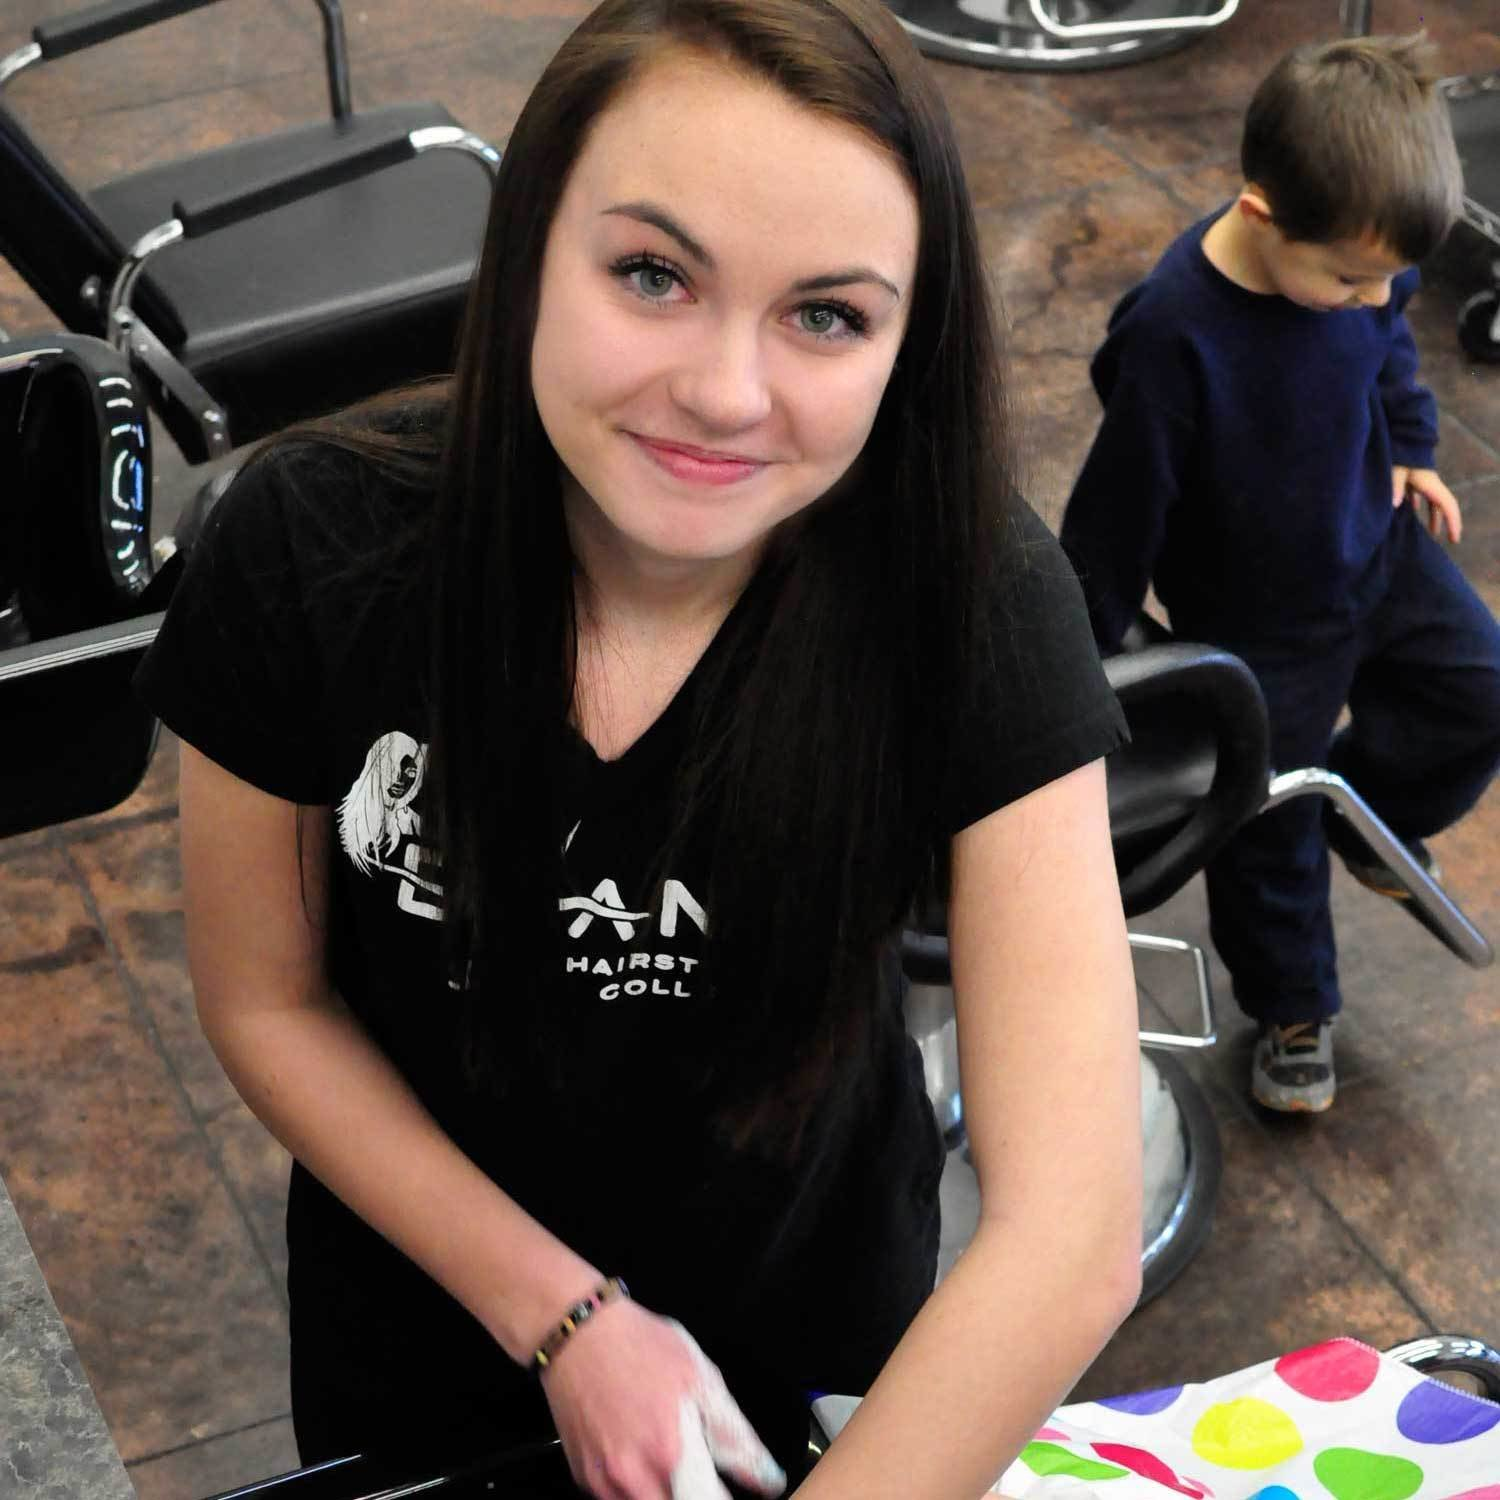 The Best Evans Hairstyling College Rexburg Id A Local Family Pictures